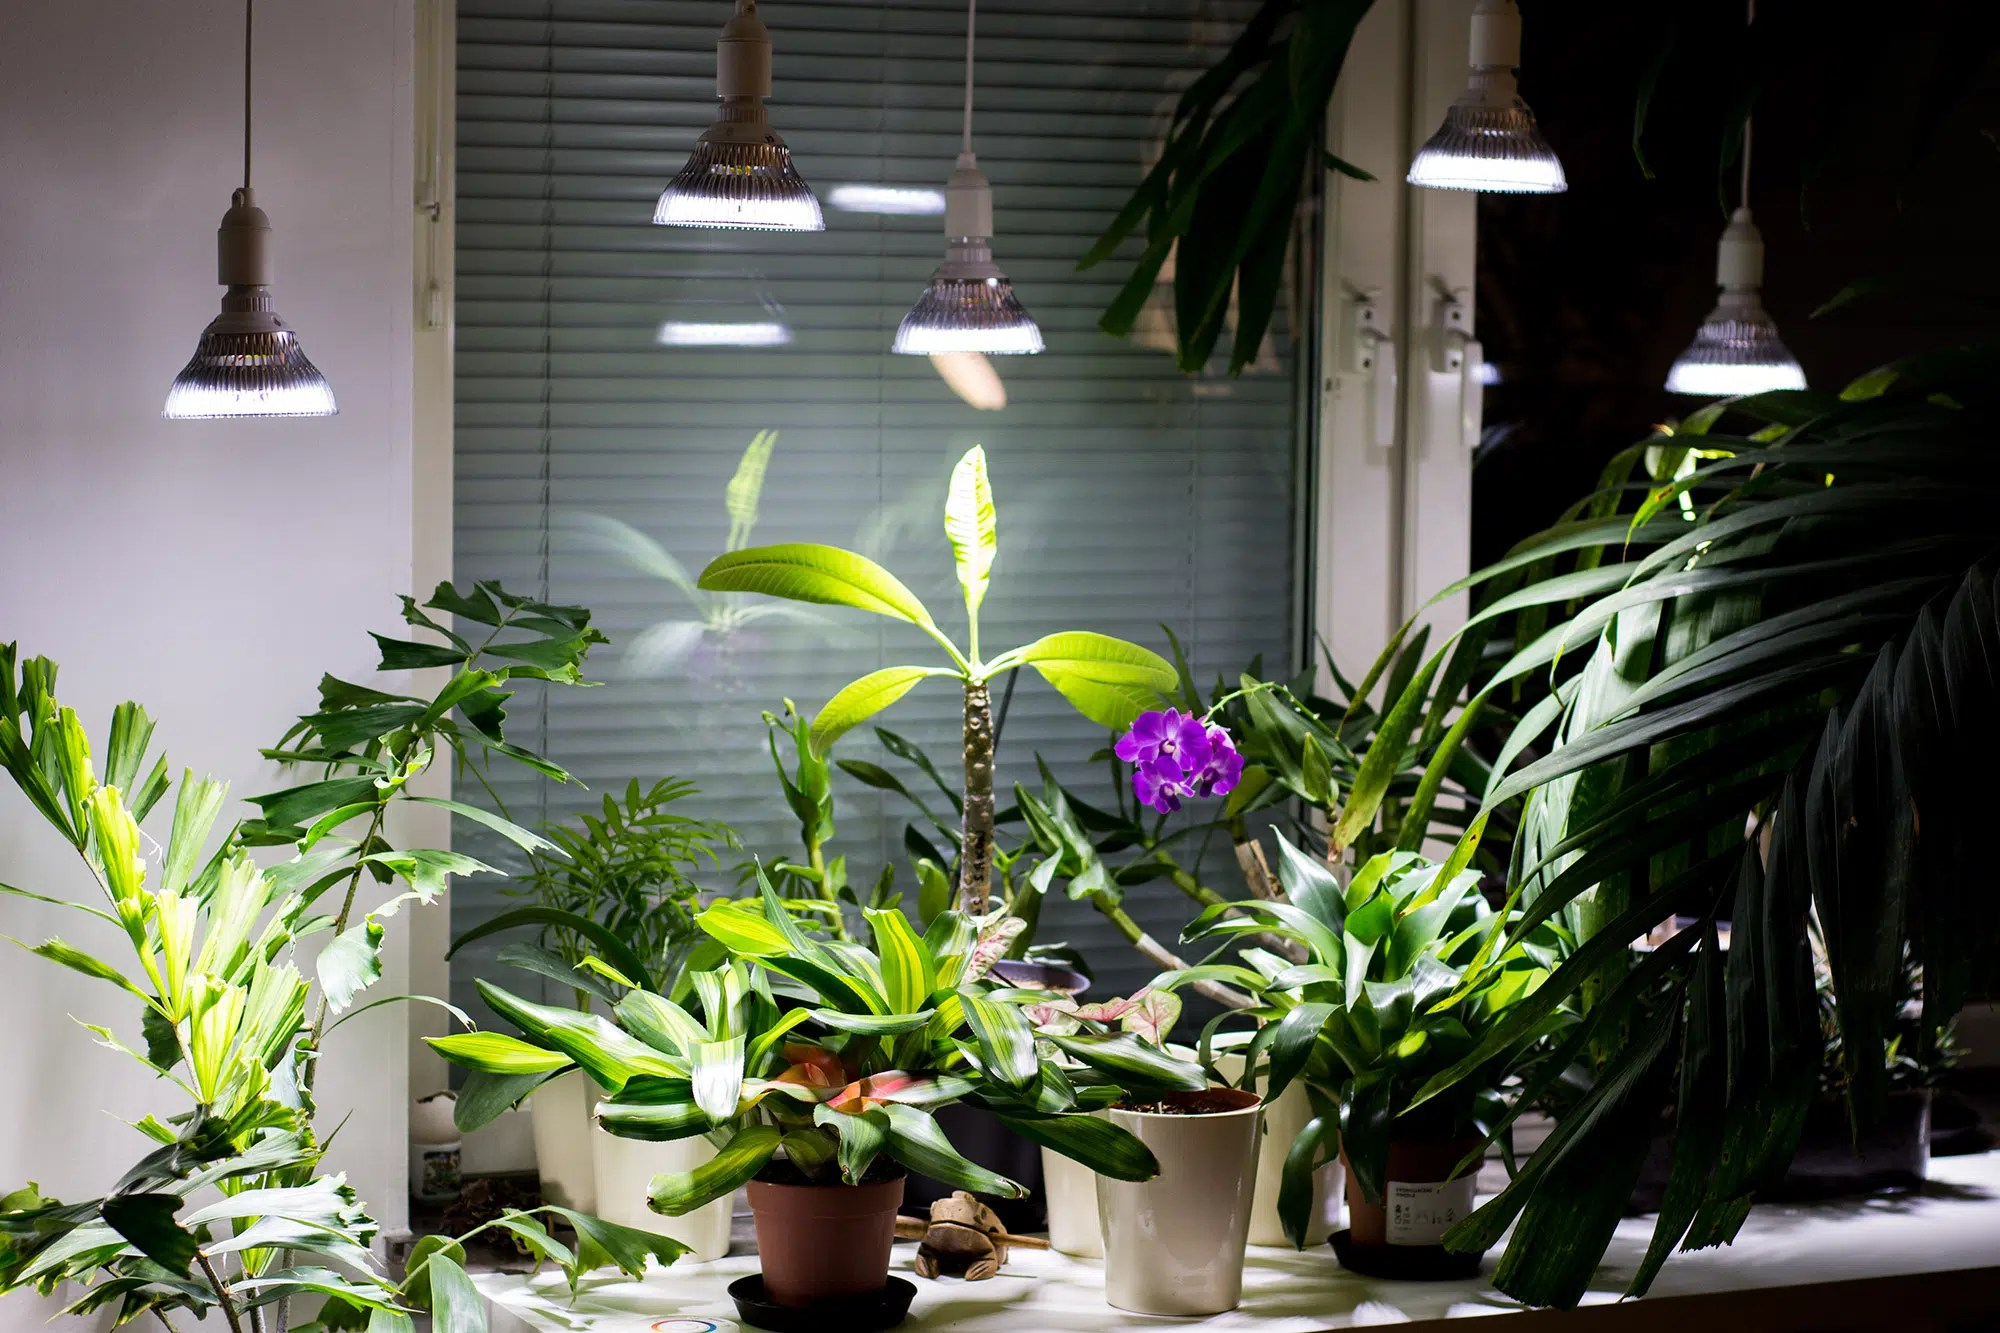 Grow Lights For Indoor Plants Let It Be Light Led Grow Lights Led And Cfl Lamps For